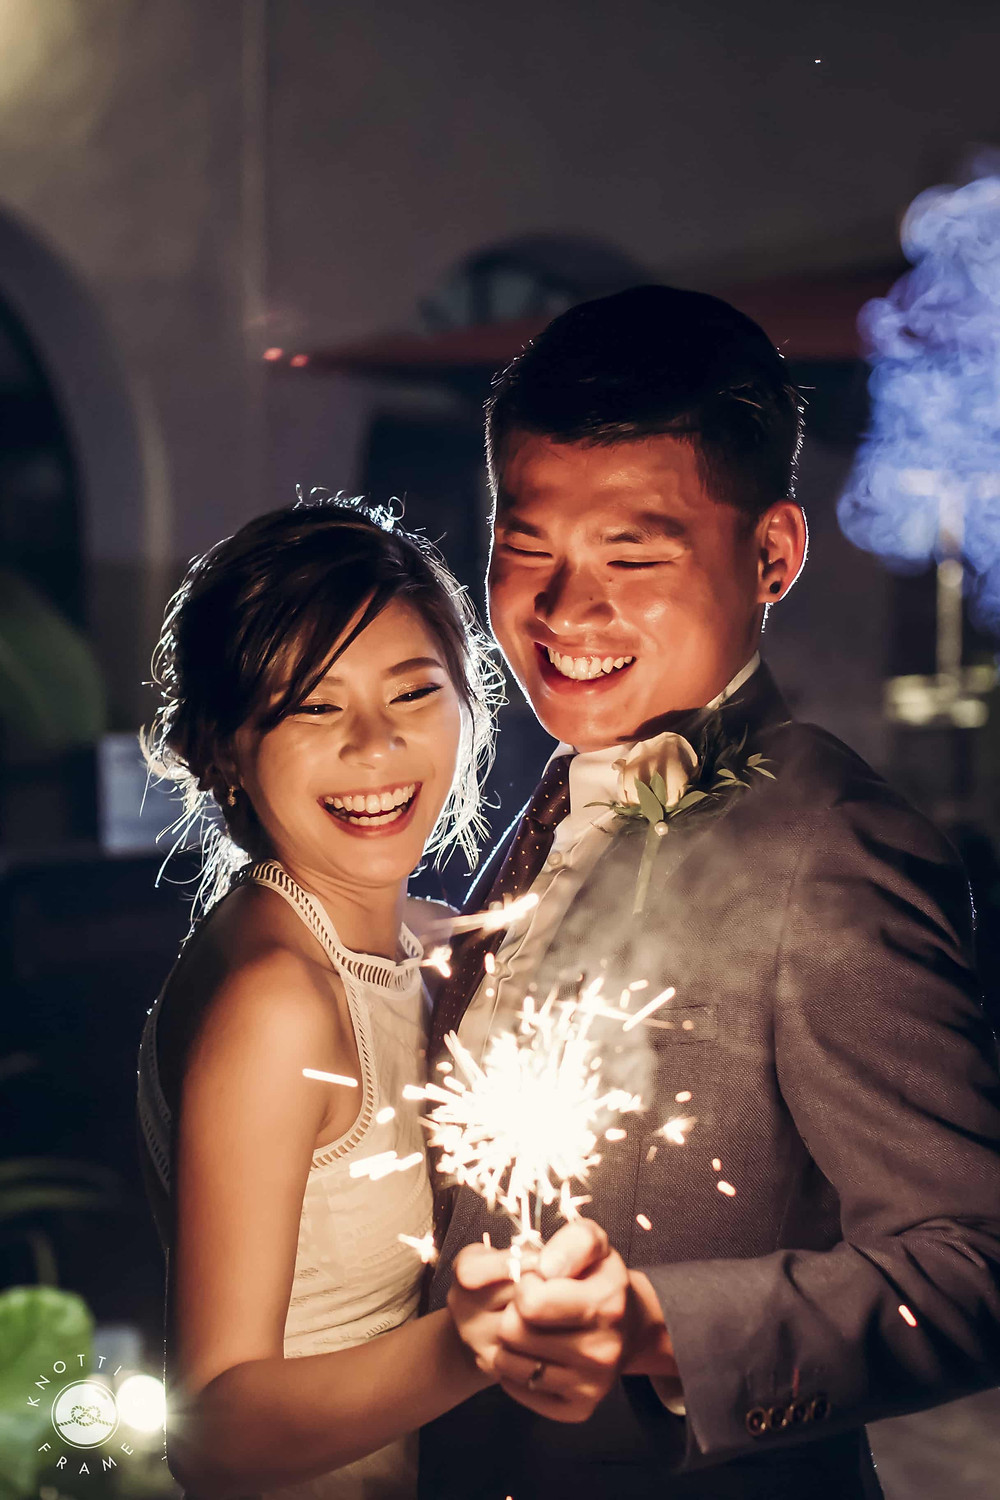 Night Wedding Photography: Couple holding sparklers and smiling